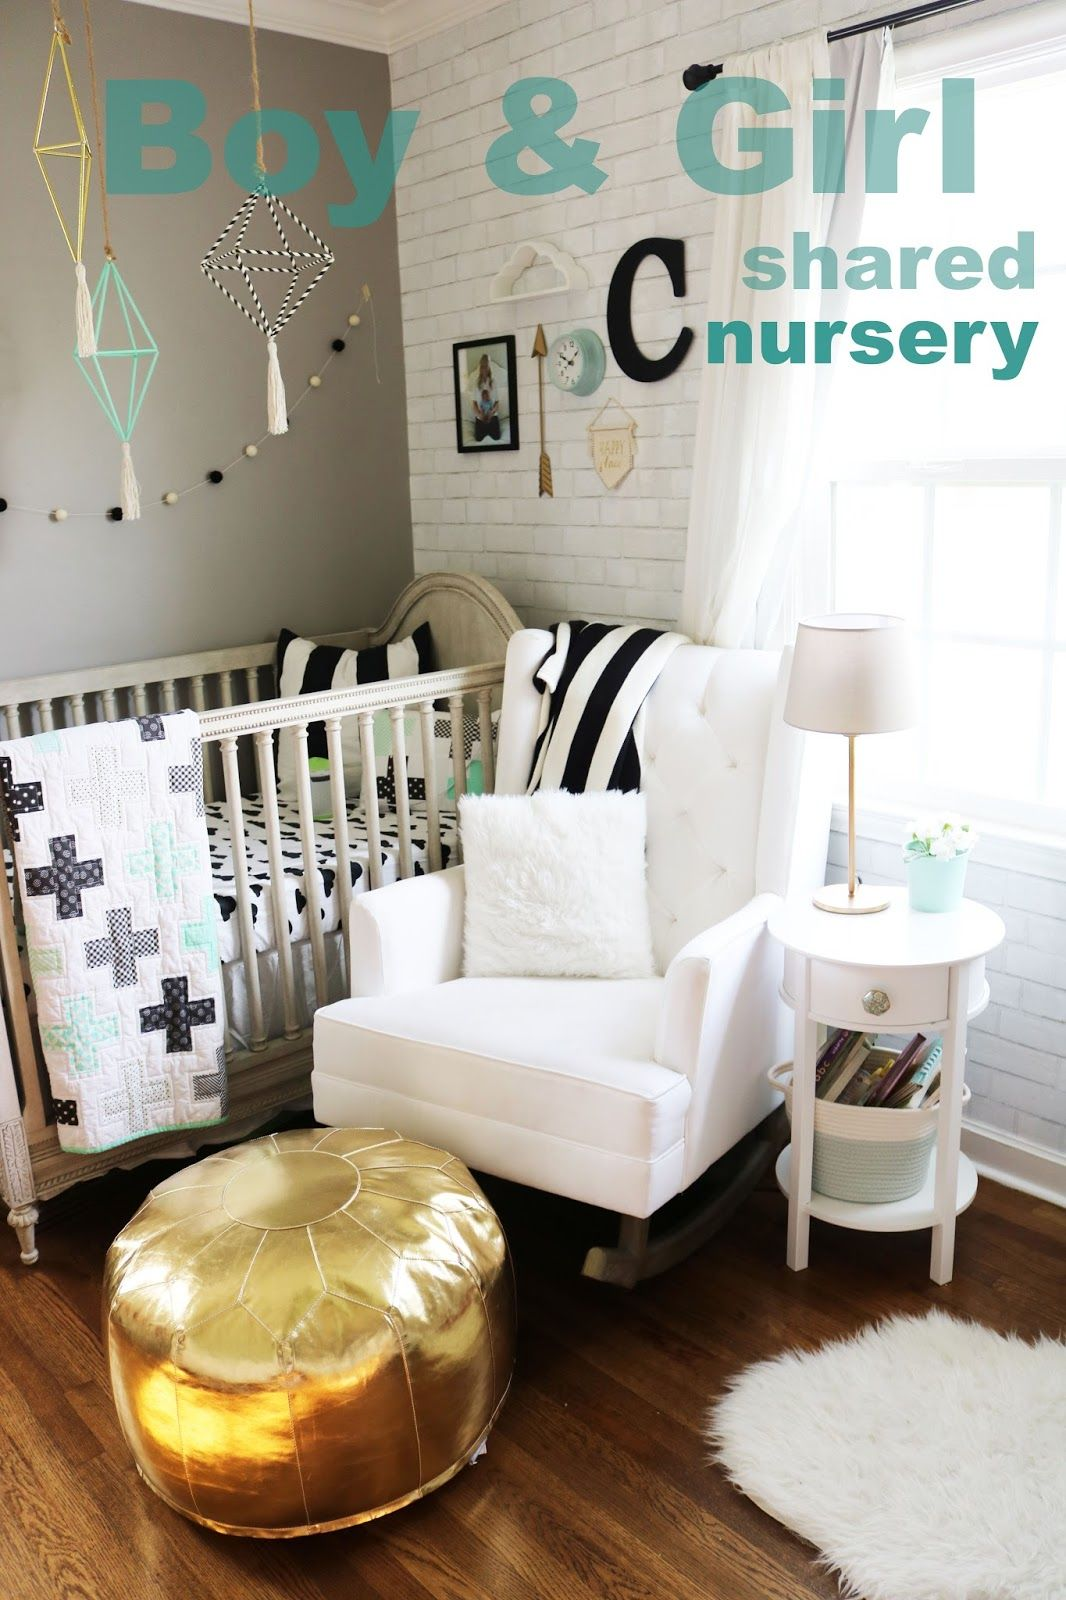 Chambre Gender Boy And Girl Shared Nursery Gender Neutral Nursery Toddler And